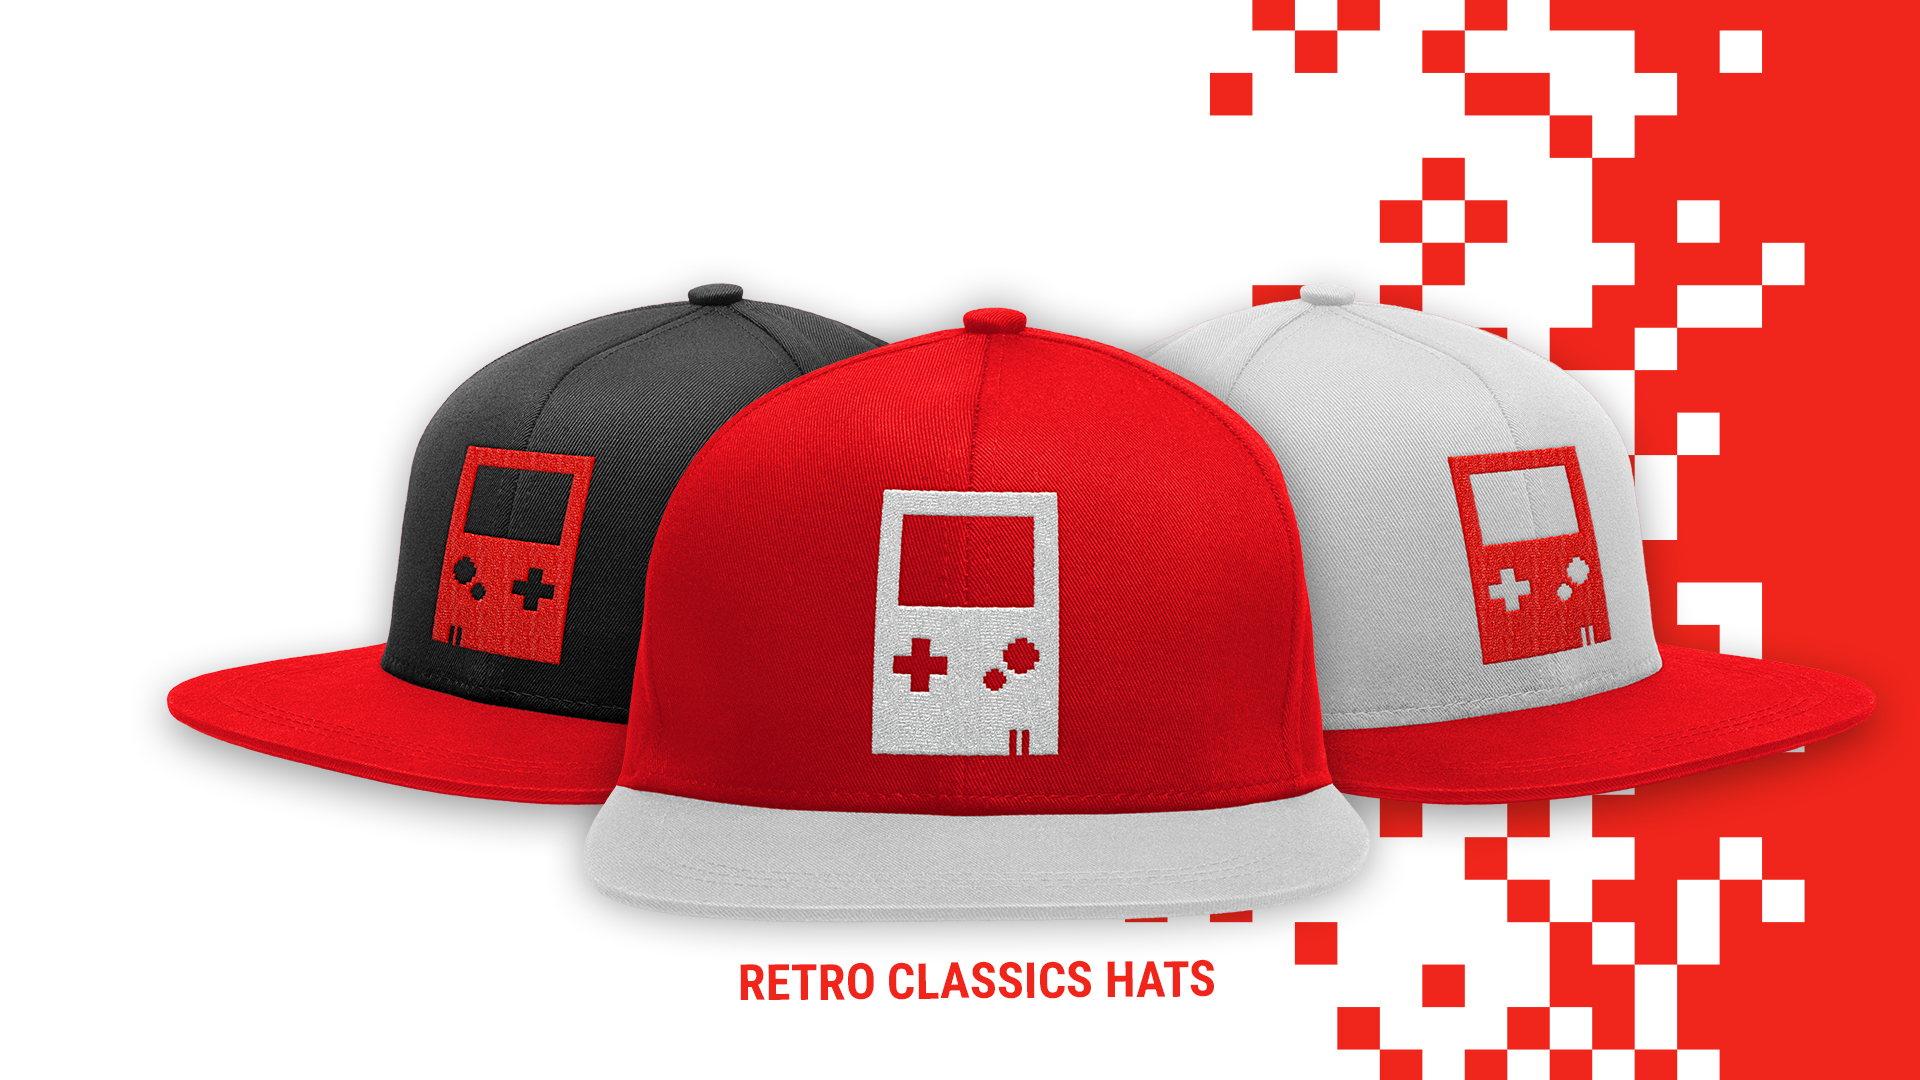 - Retro Classics merchandise will be sold to help expand their pull on potential customers.